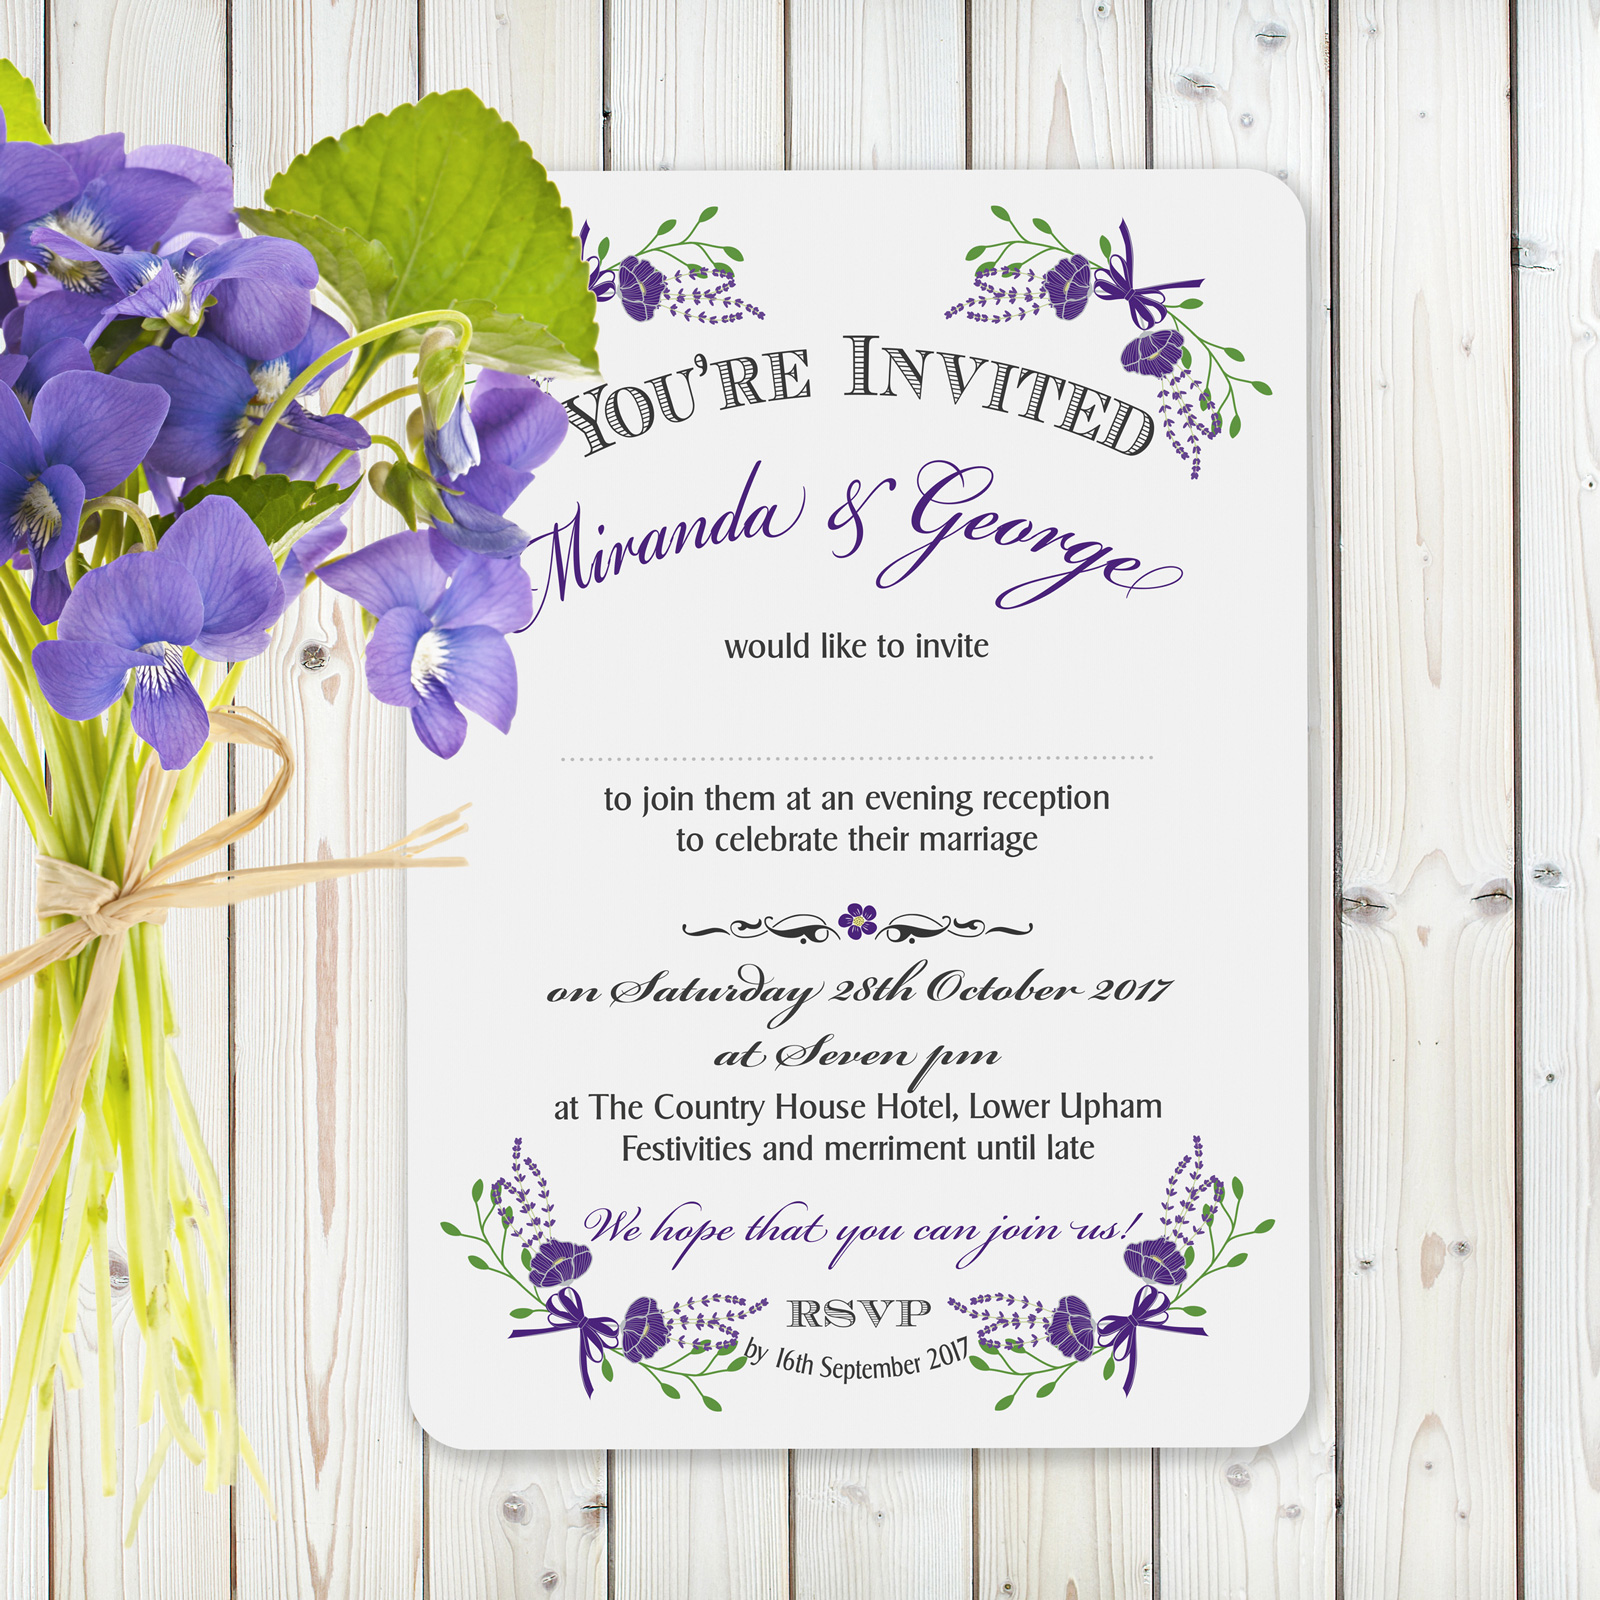 Floral Fantasy Purple on White Card - Evening Invitation